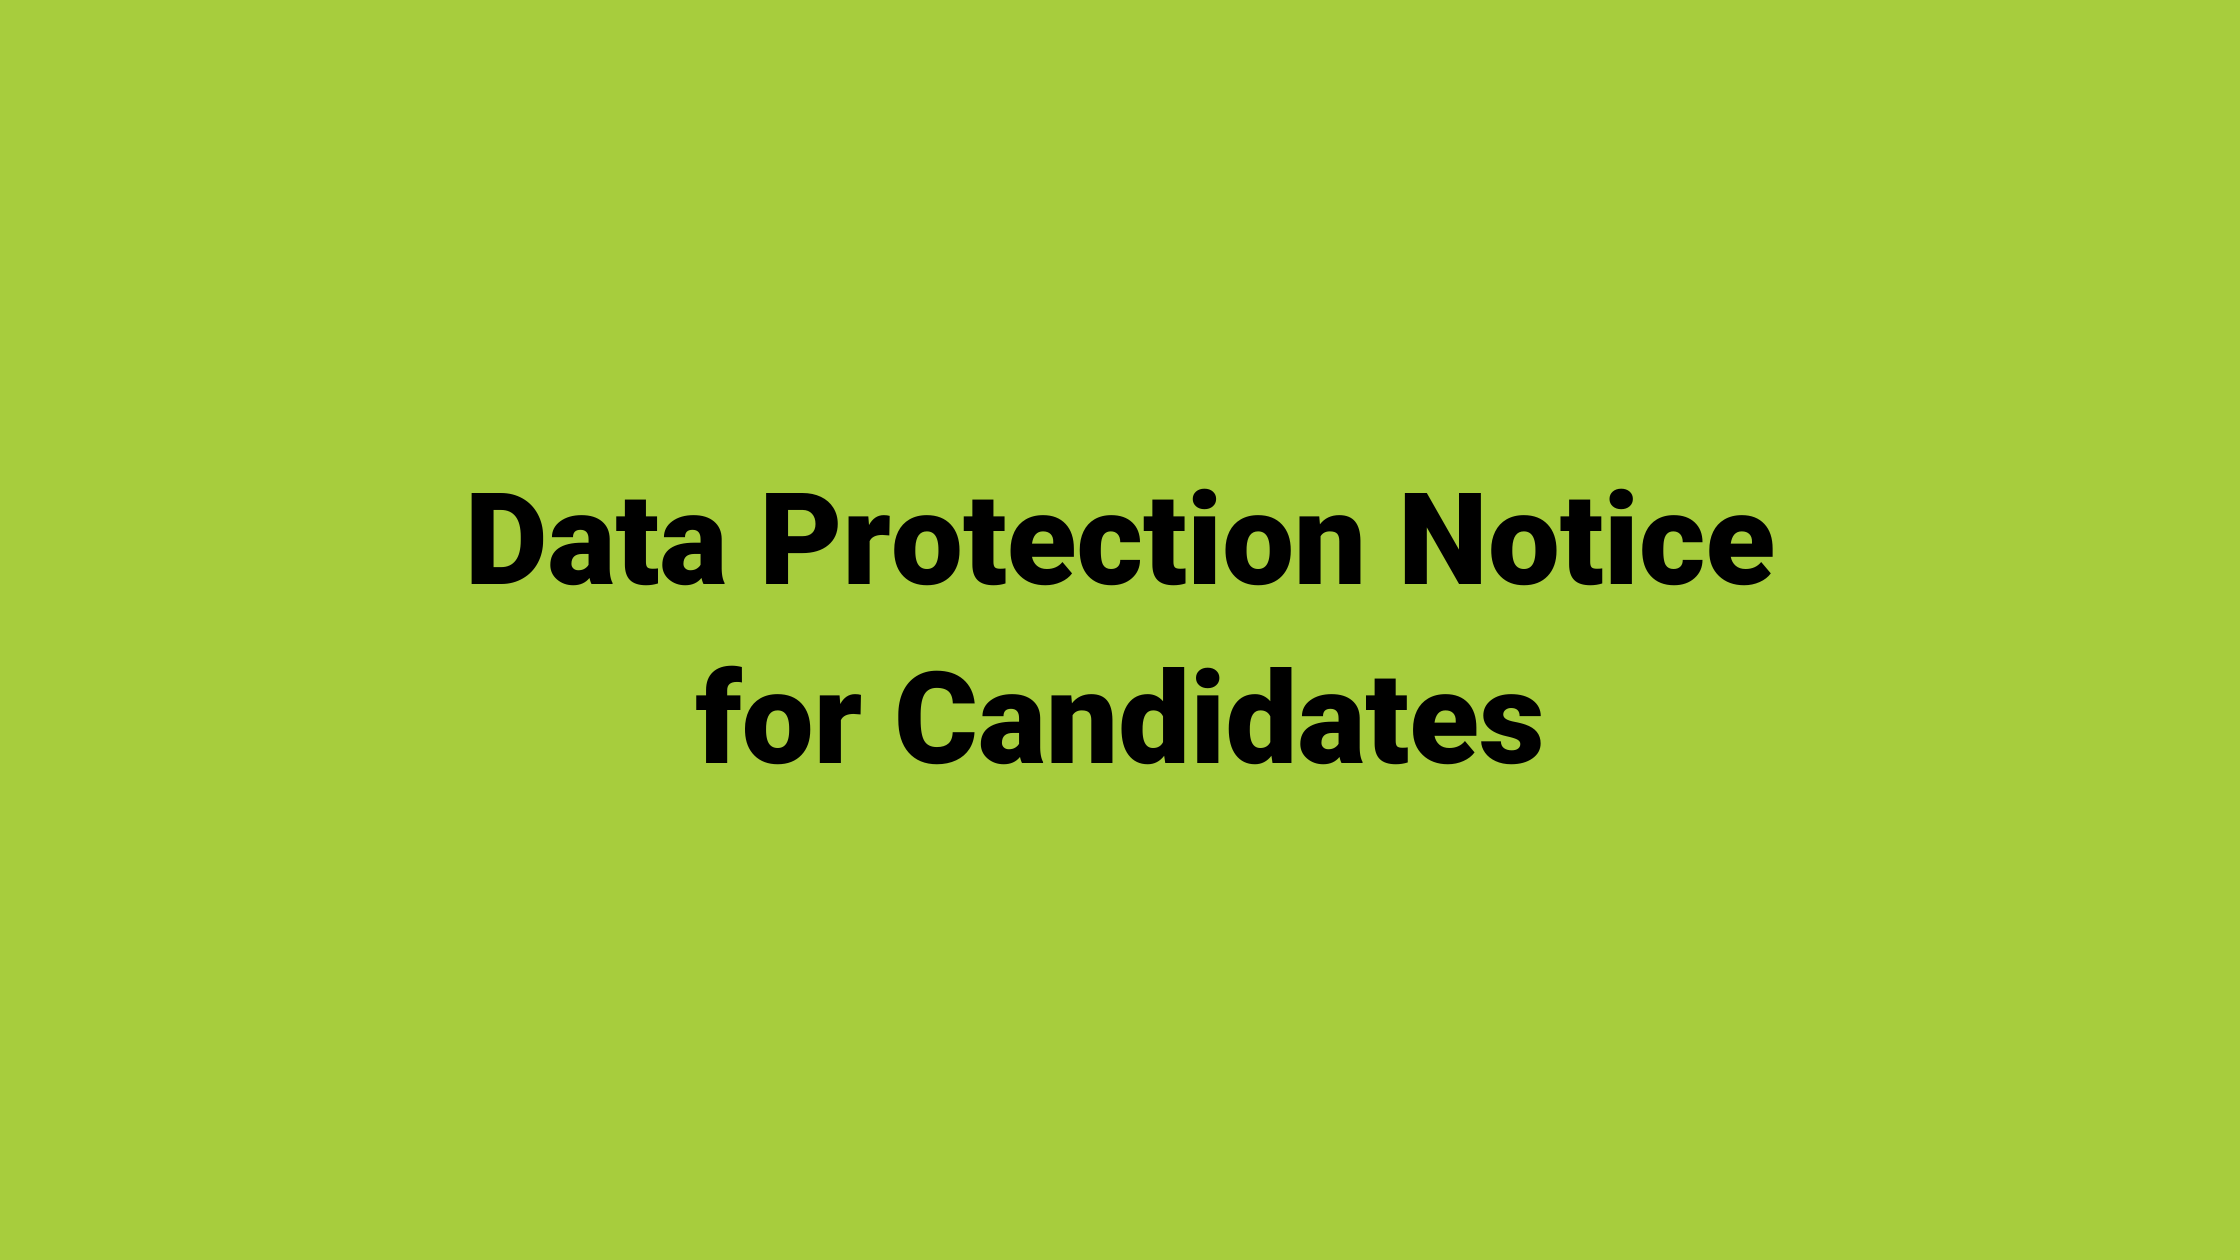 Data Protection Notice for Candidates